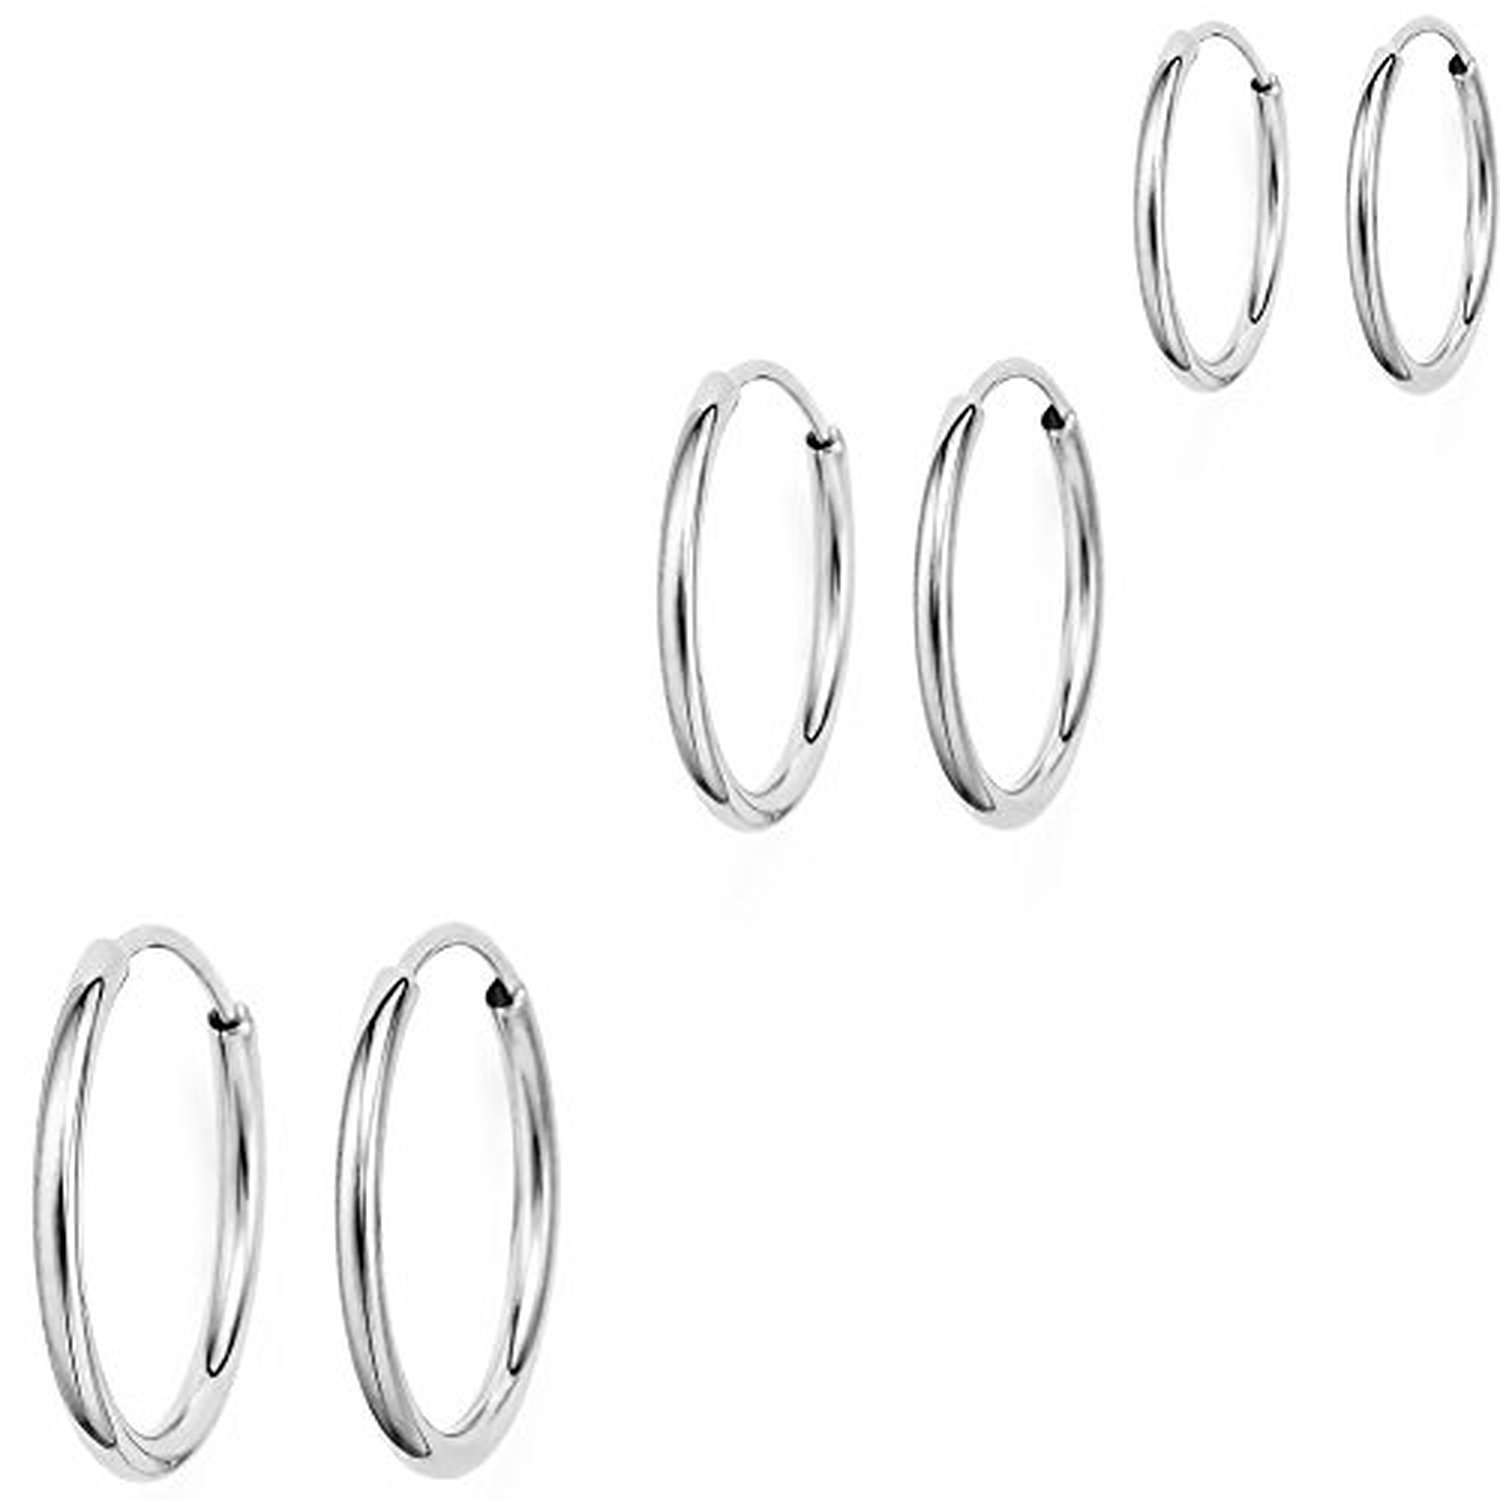 14k White Gold Endless Hoop Earrings For Ears Cartilage Nose Or